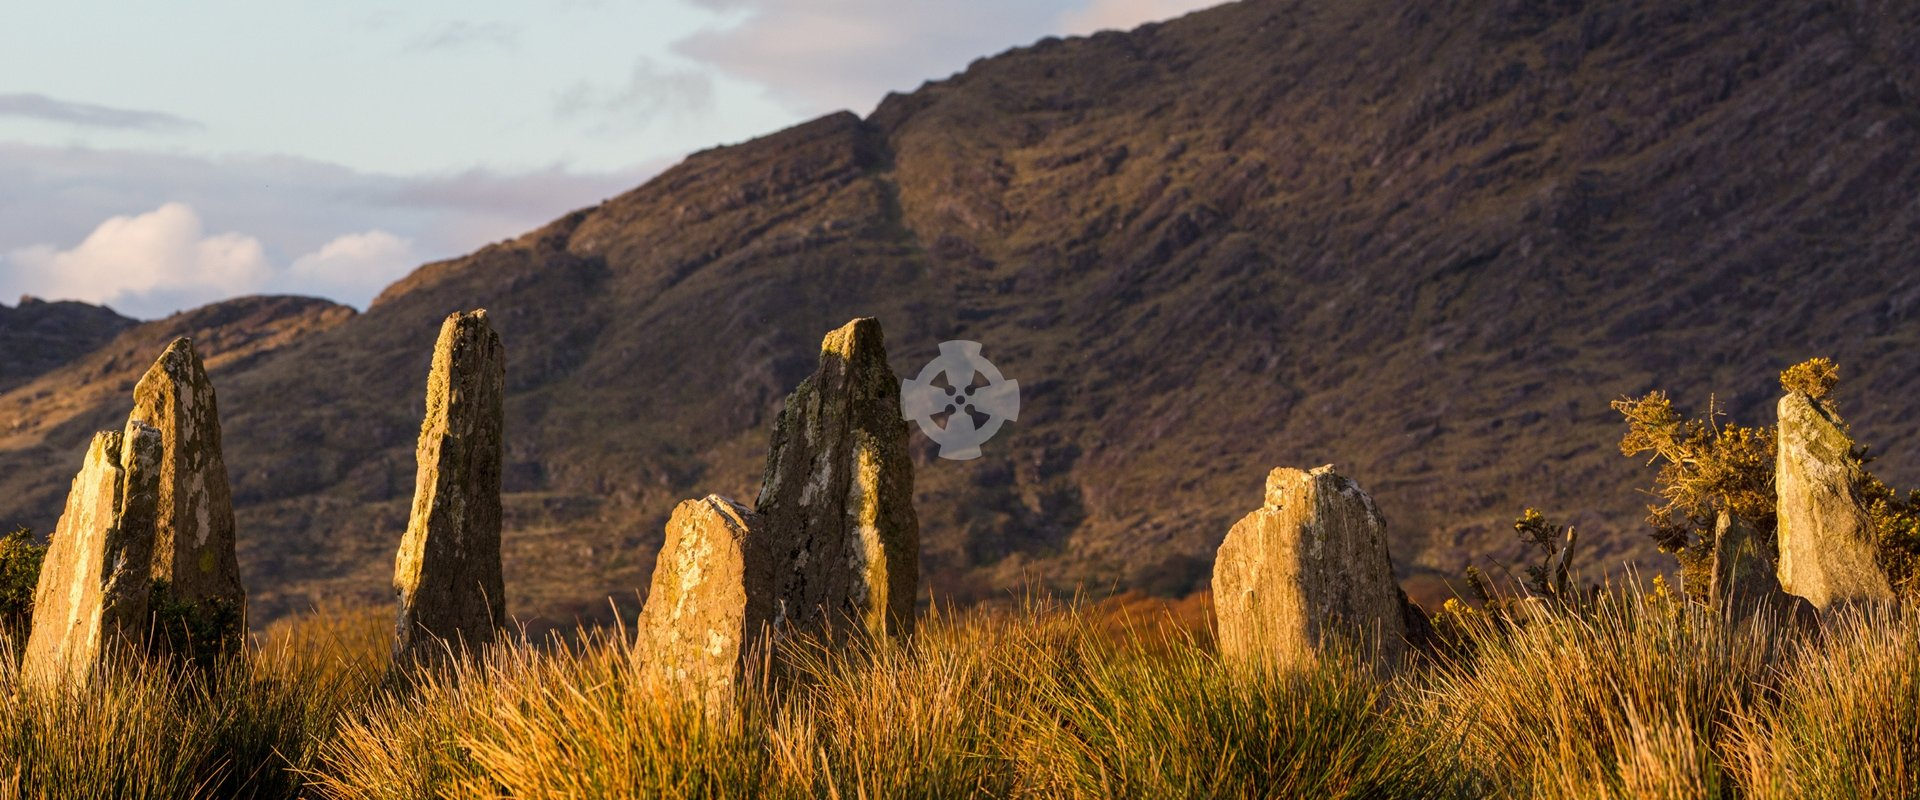 photo of ardgroom stone circle in sunset light